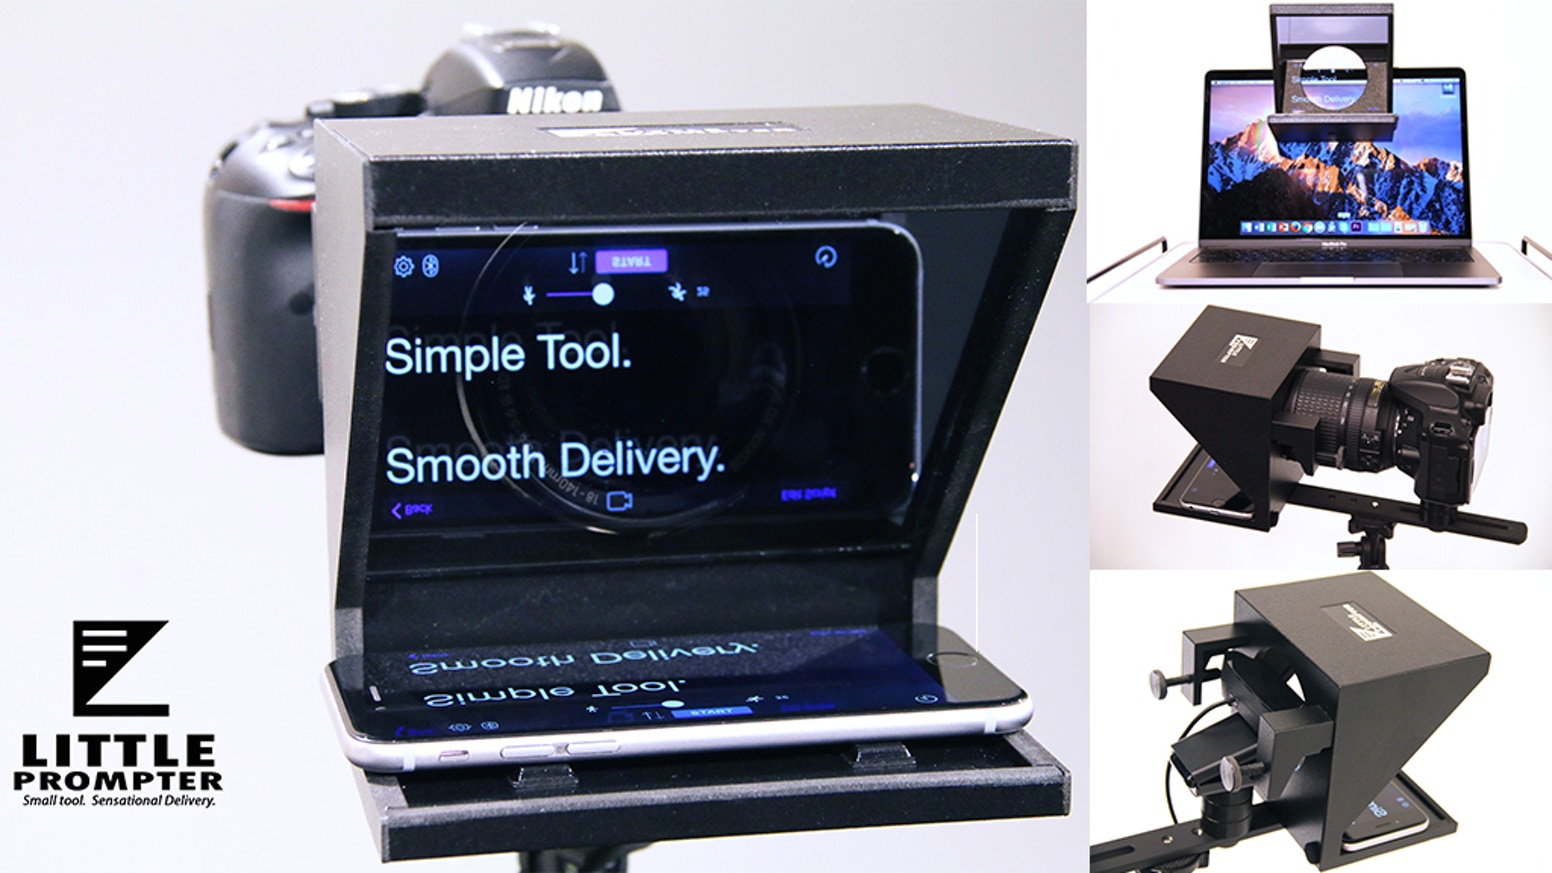 The Little Prompter Kickstarted beautifully, and now you can learn more and pre-order at www.LittlePrompter.com.